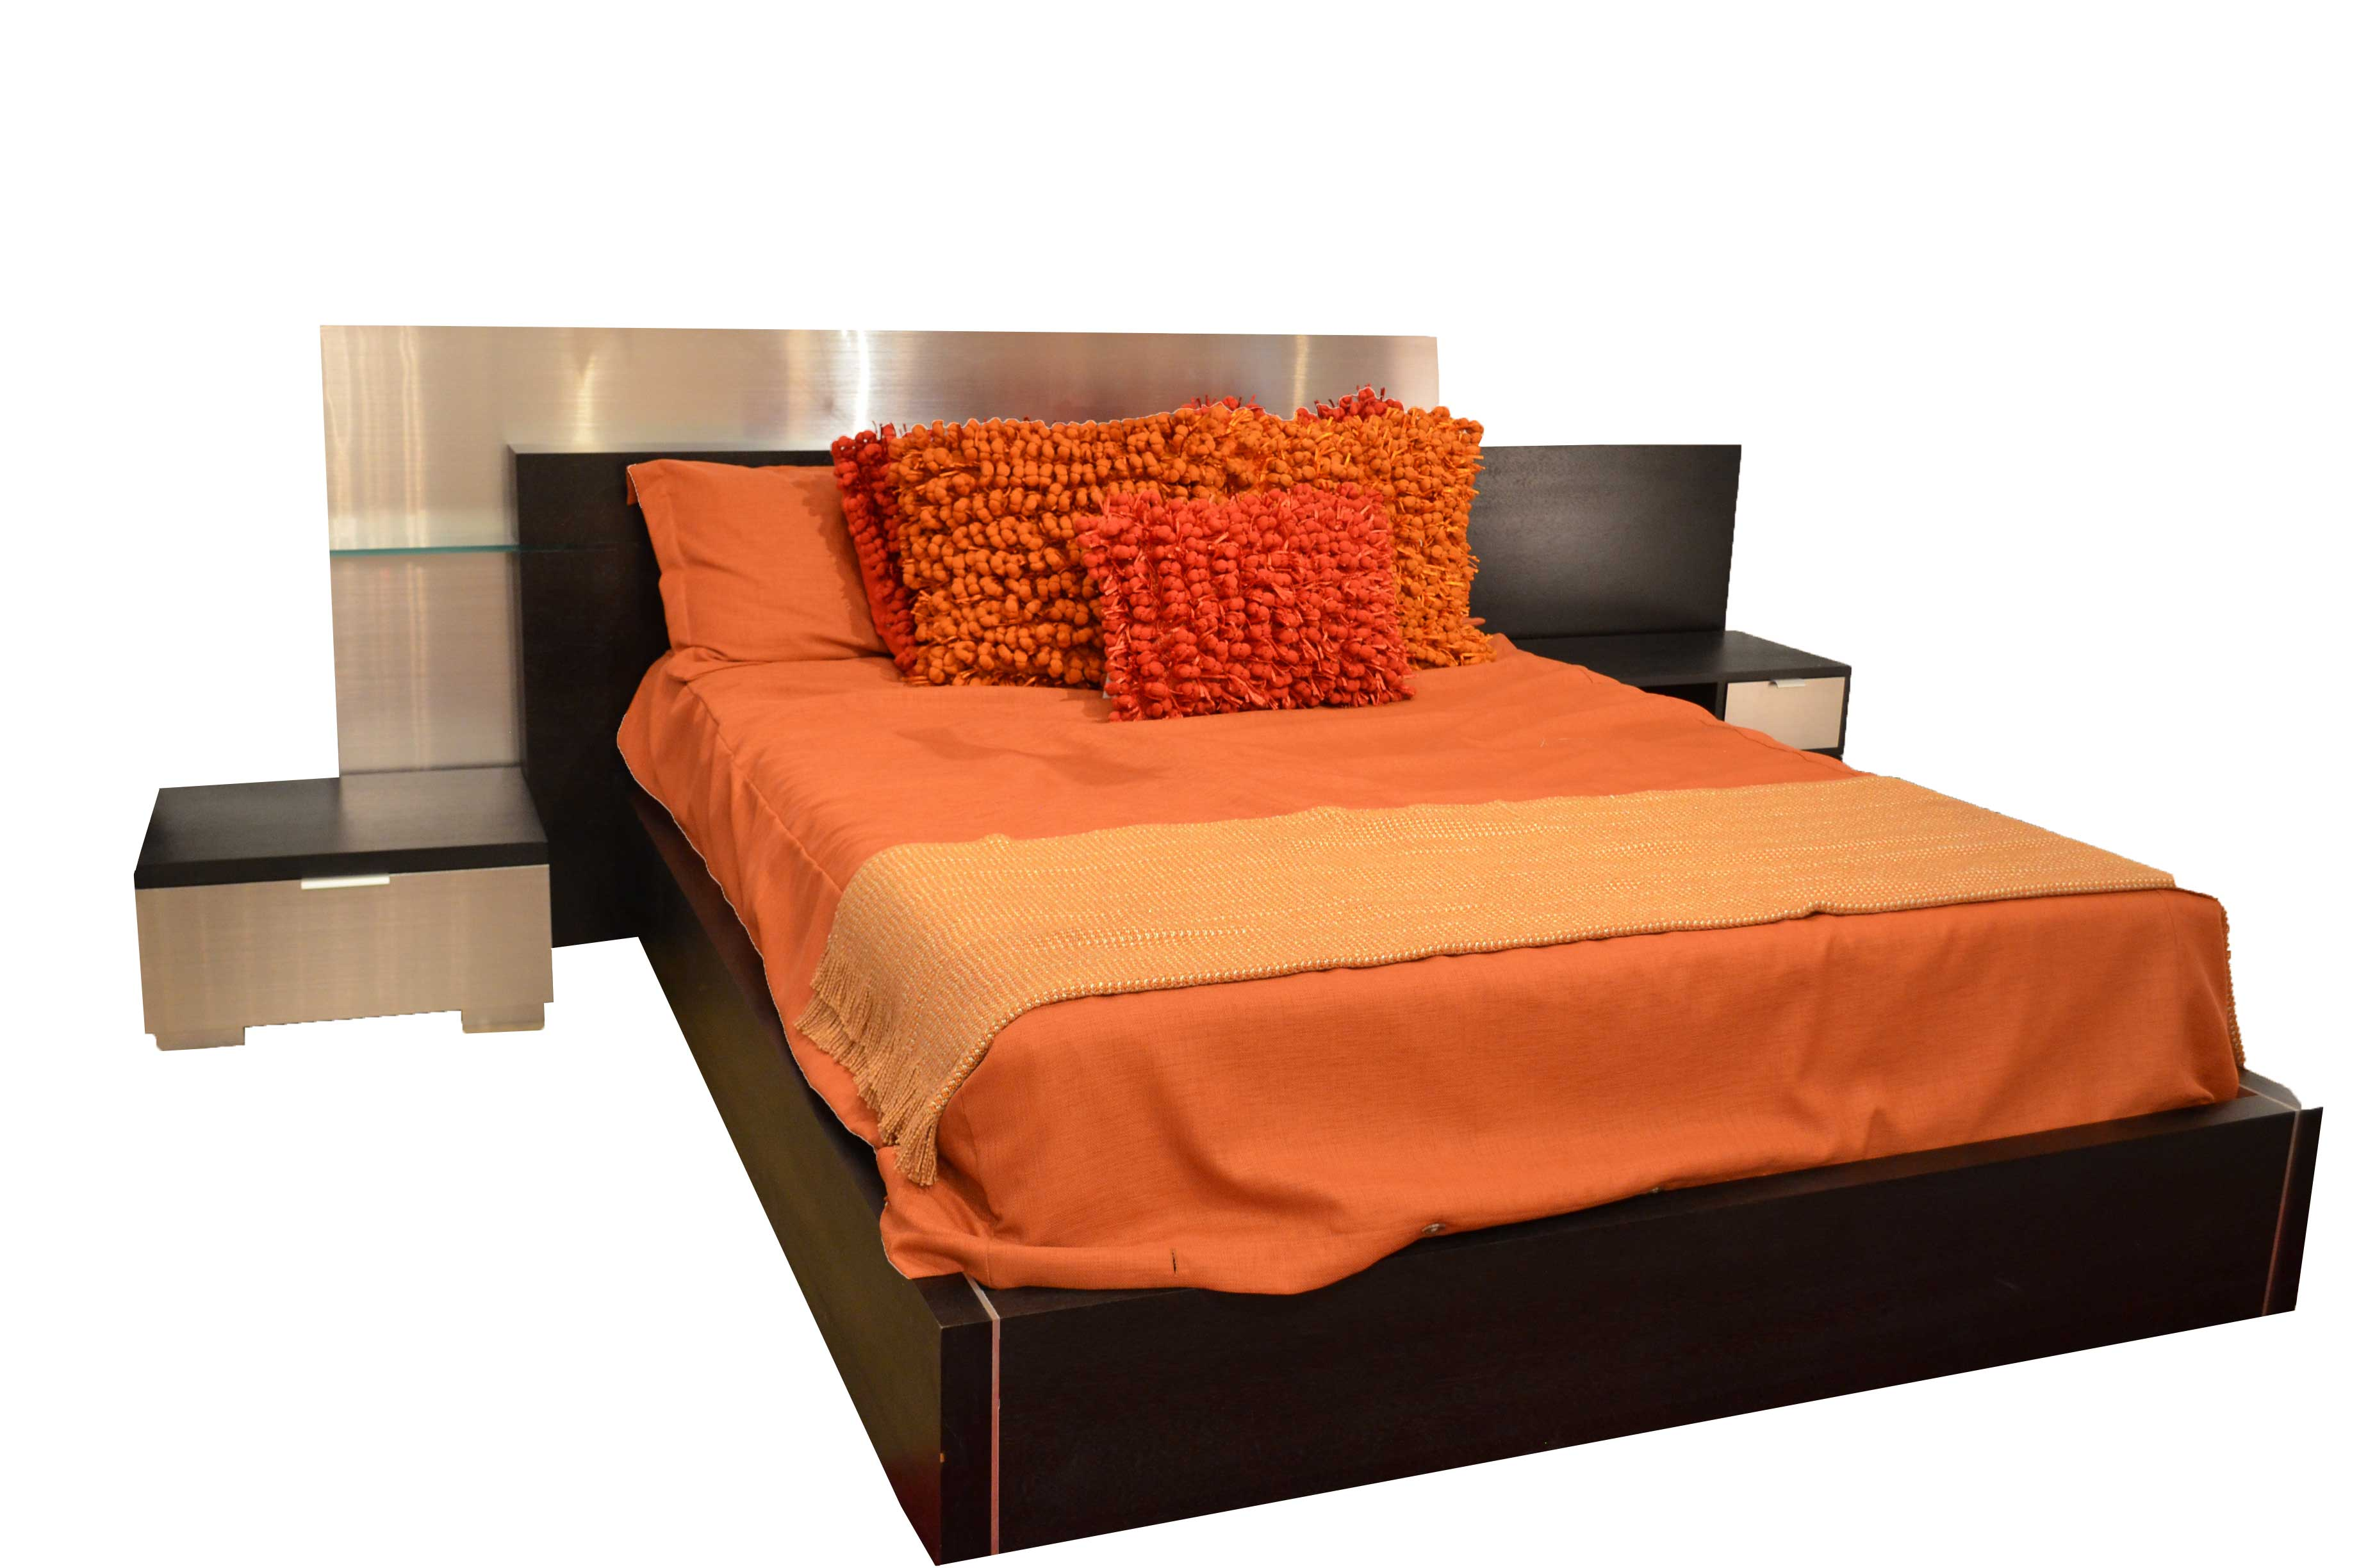 How Big Should My Room Be For A King Size Bed Thingz Contemporary